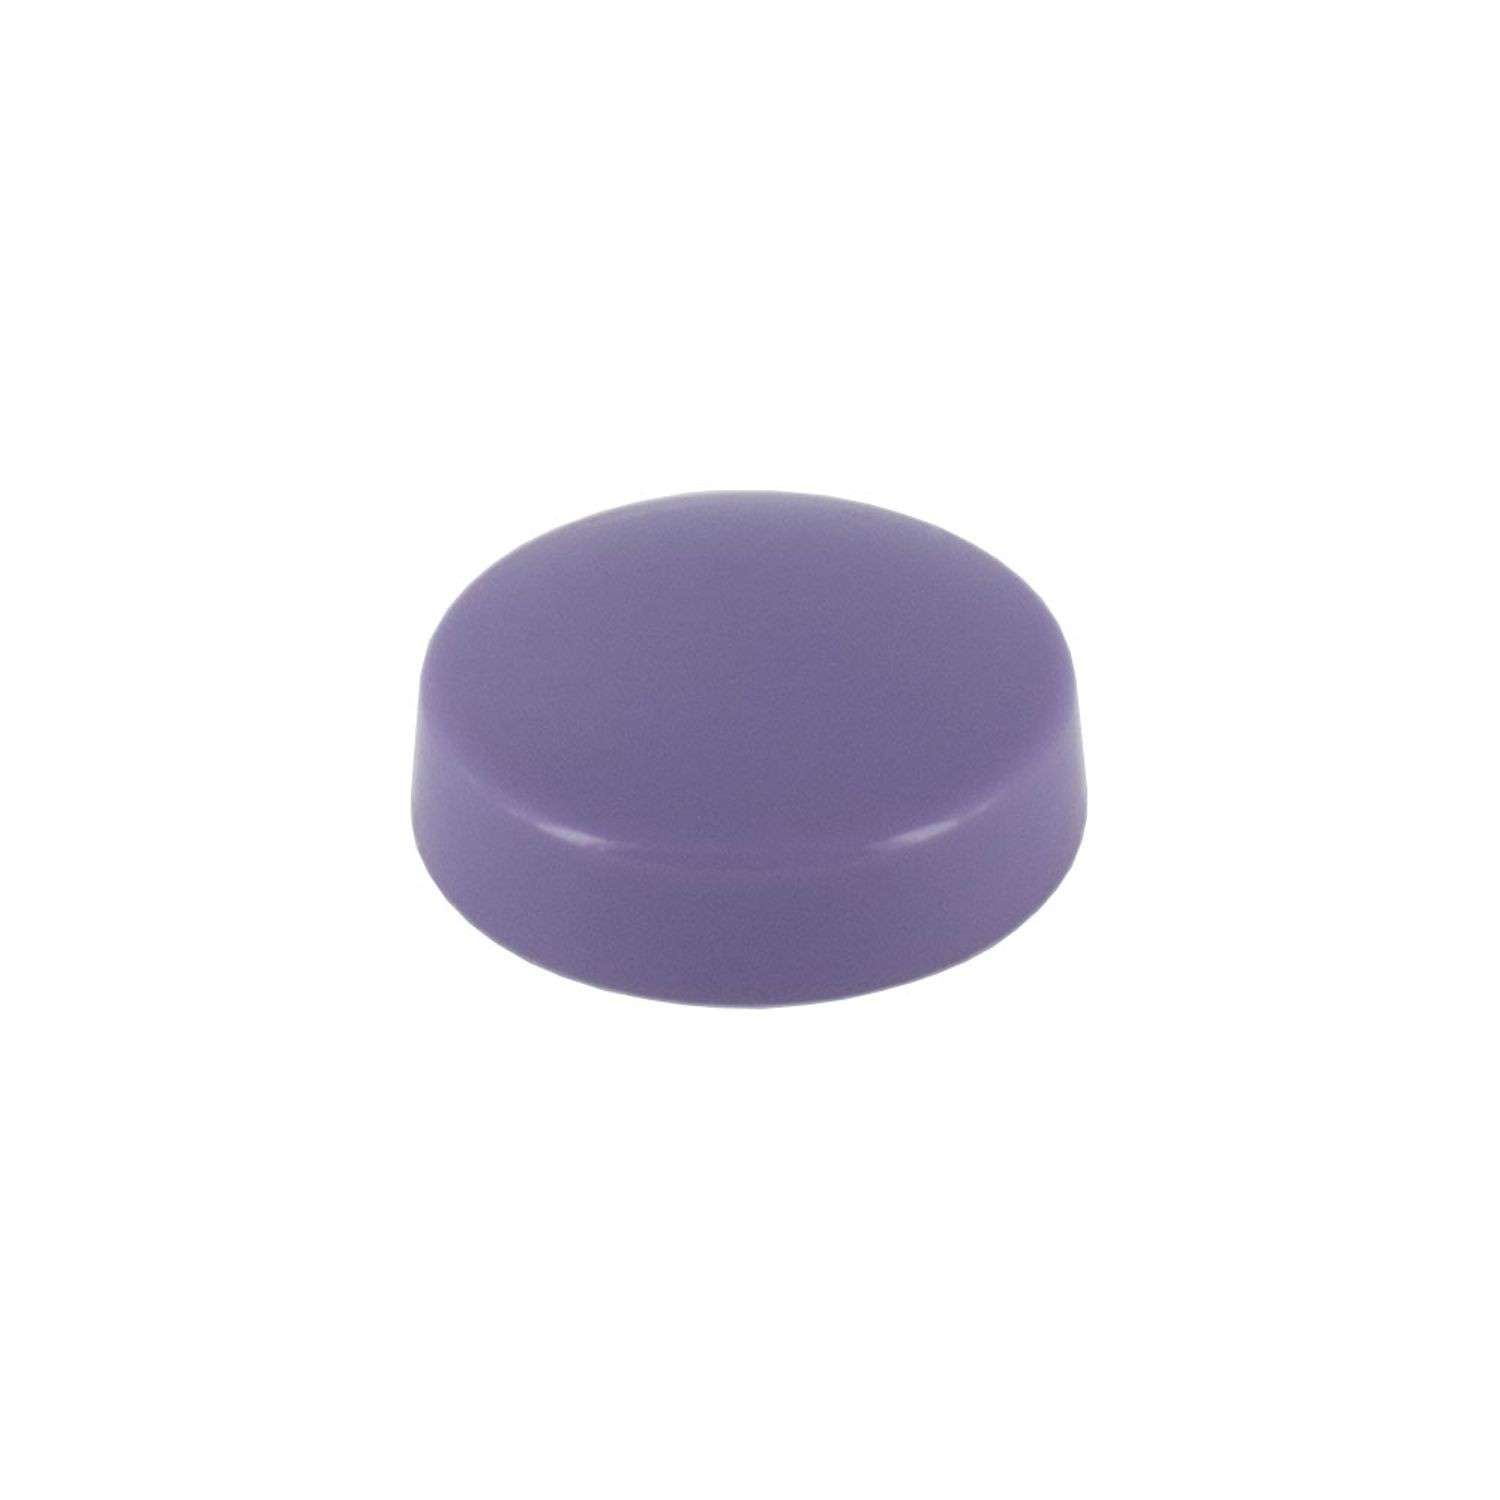 ".515"" Diameter Purple Polypropylene Pop-On Scew Cover"